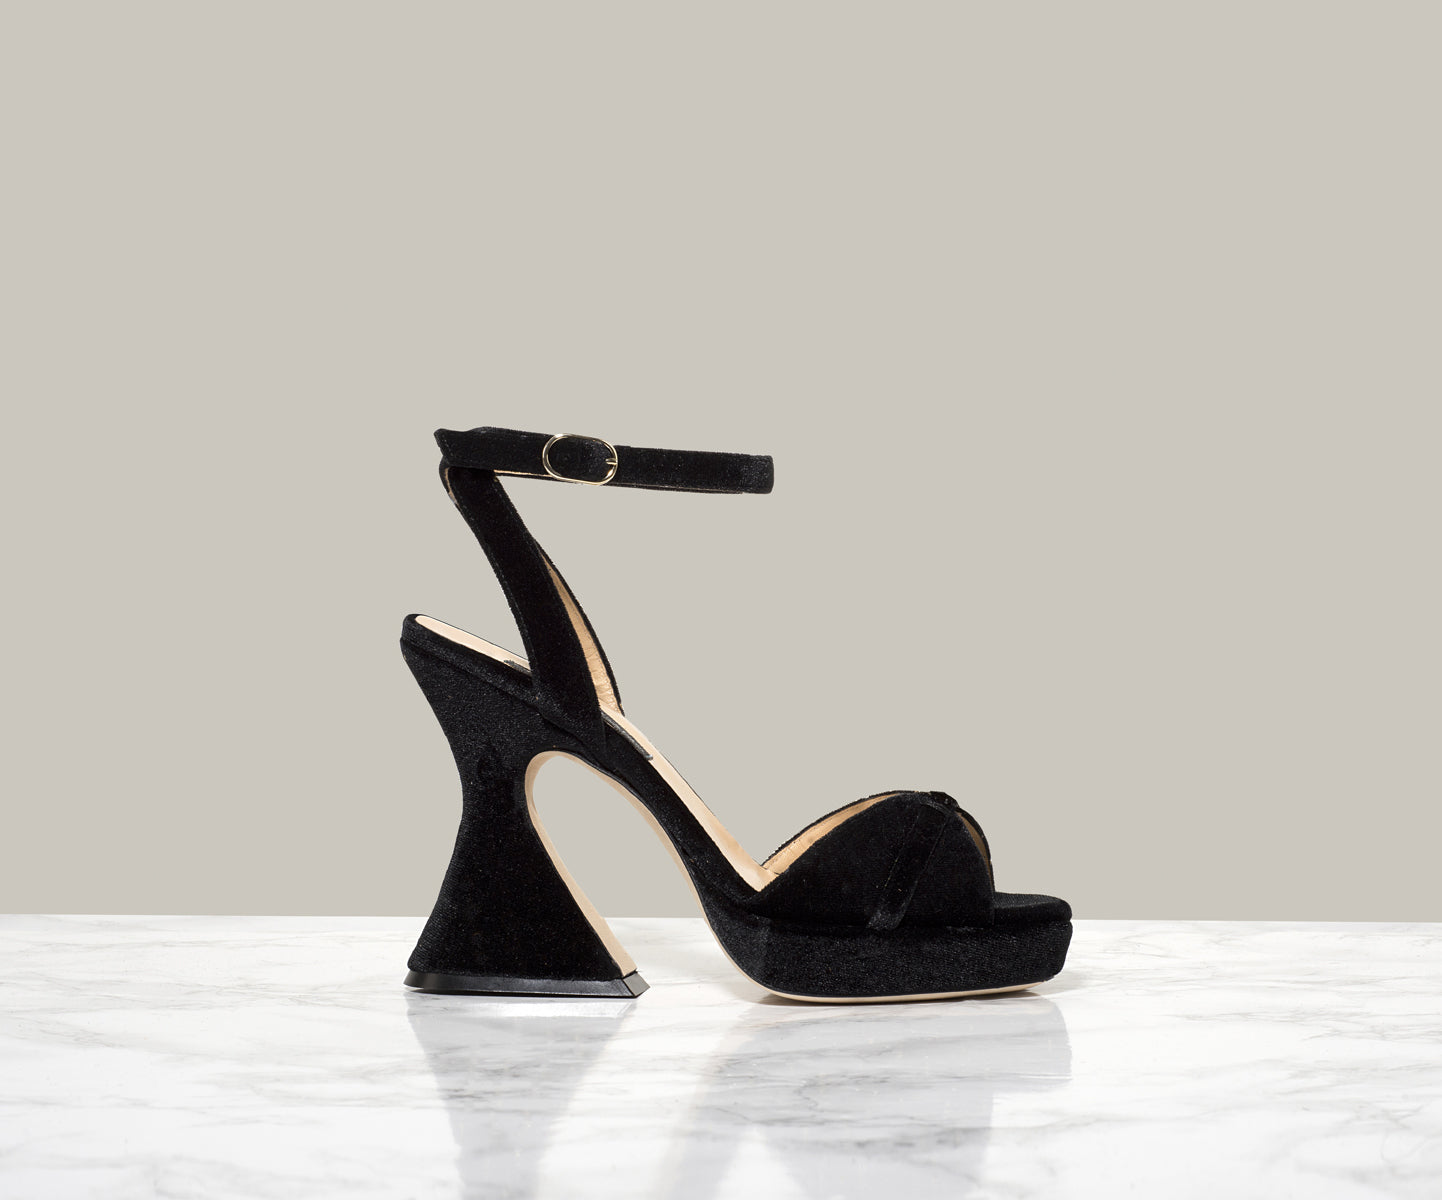 KELS RETRO SANDALS, Black Suede